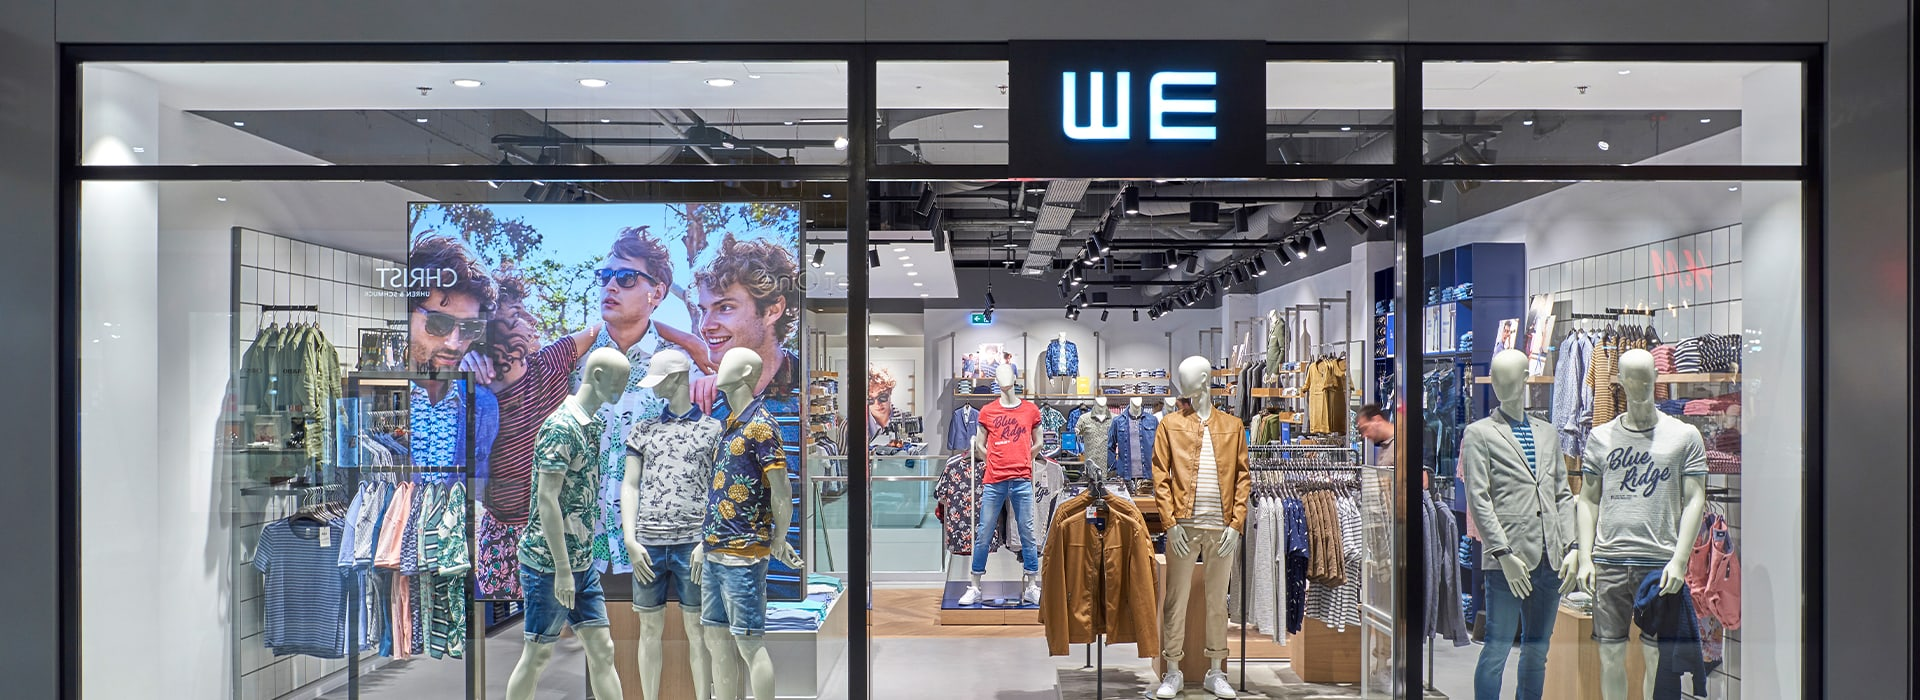 Shopfront von WE Fashion im Emmen Center